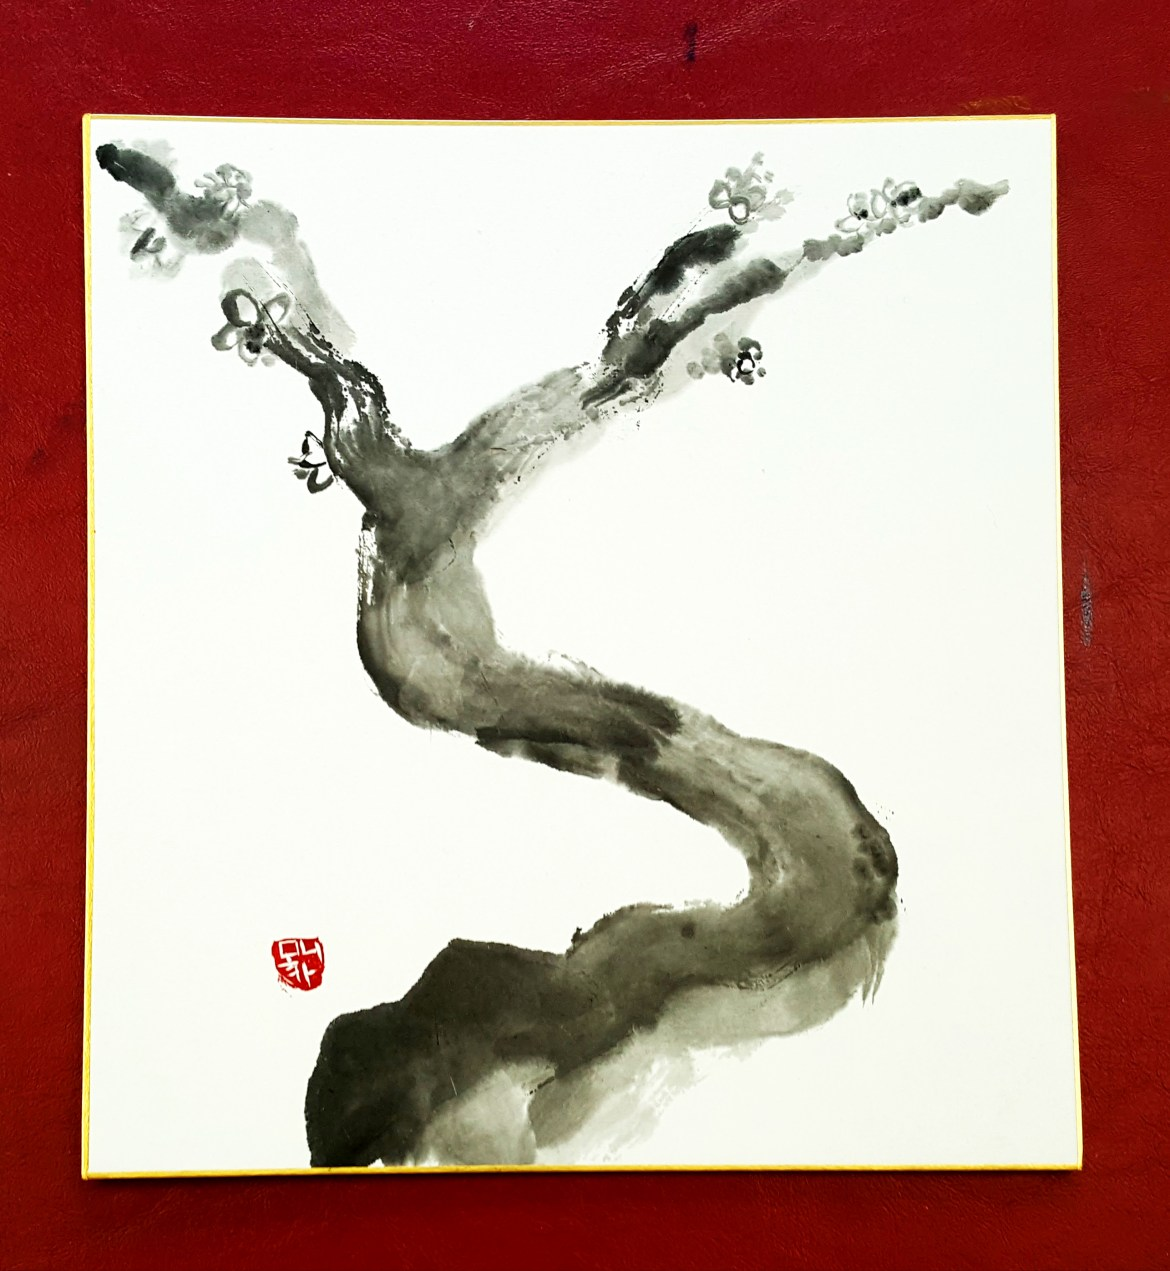 Sumi-e Japanese ink painting final plum painting with red background